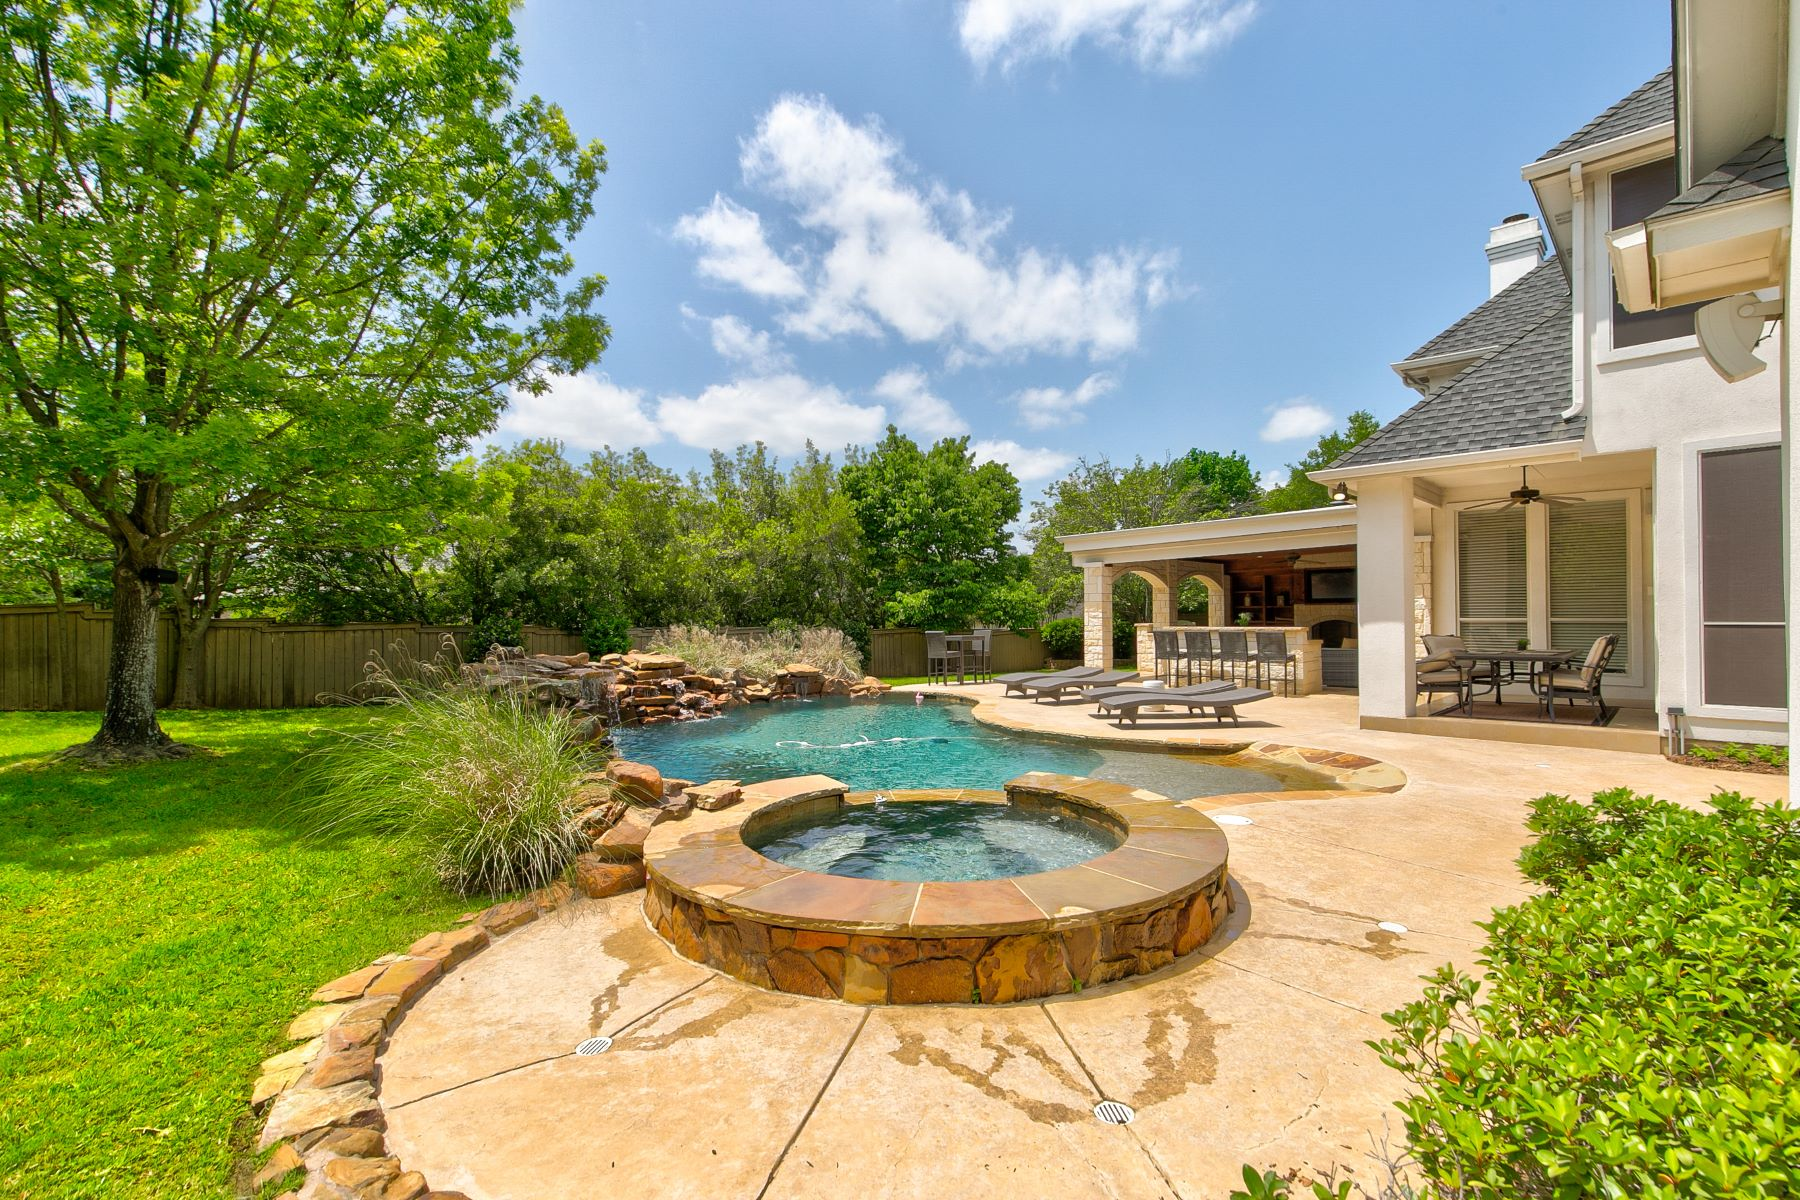 Single Family Homes for Sale at Outdoor Living Area of Your Dreams 605 Fairway View Terrace Southlake, Texas 76092 United States